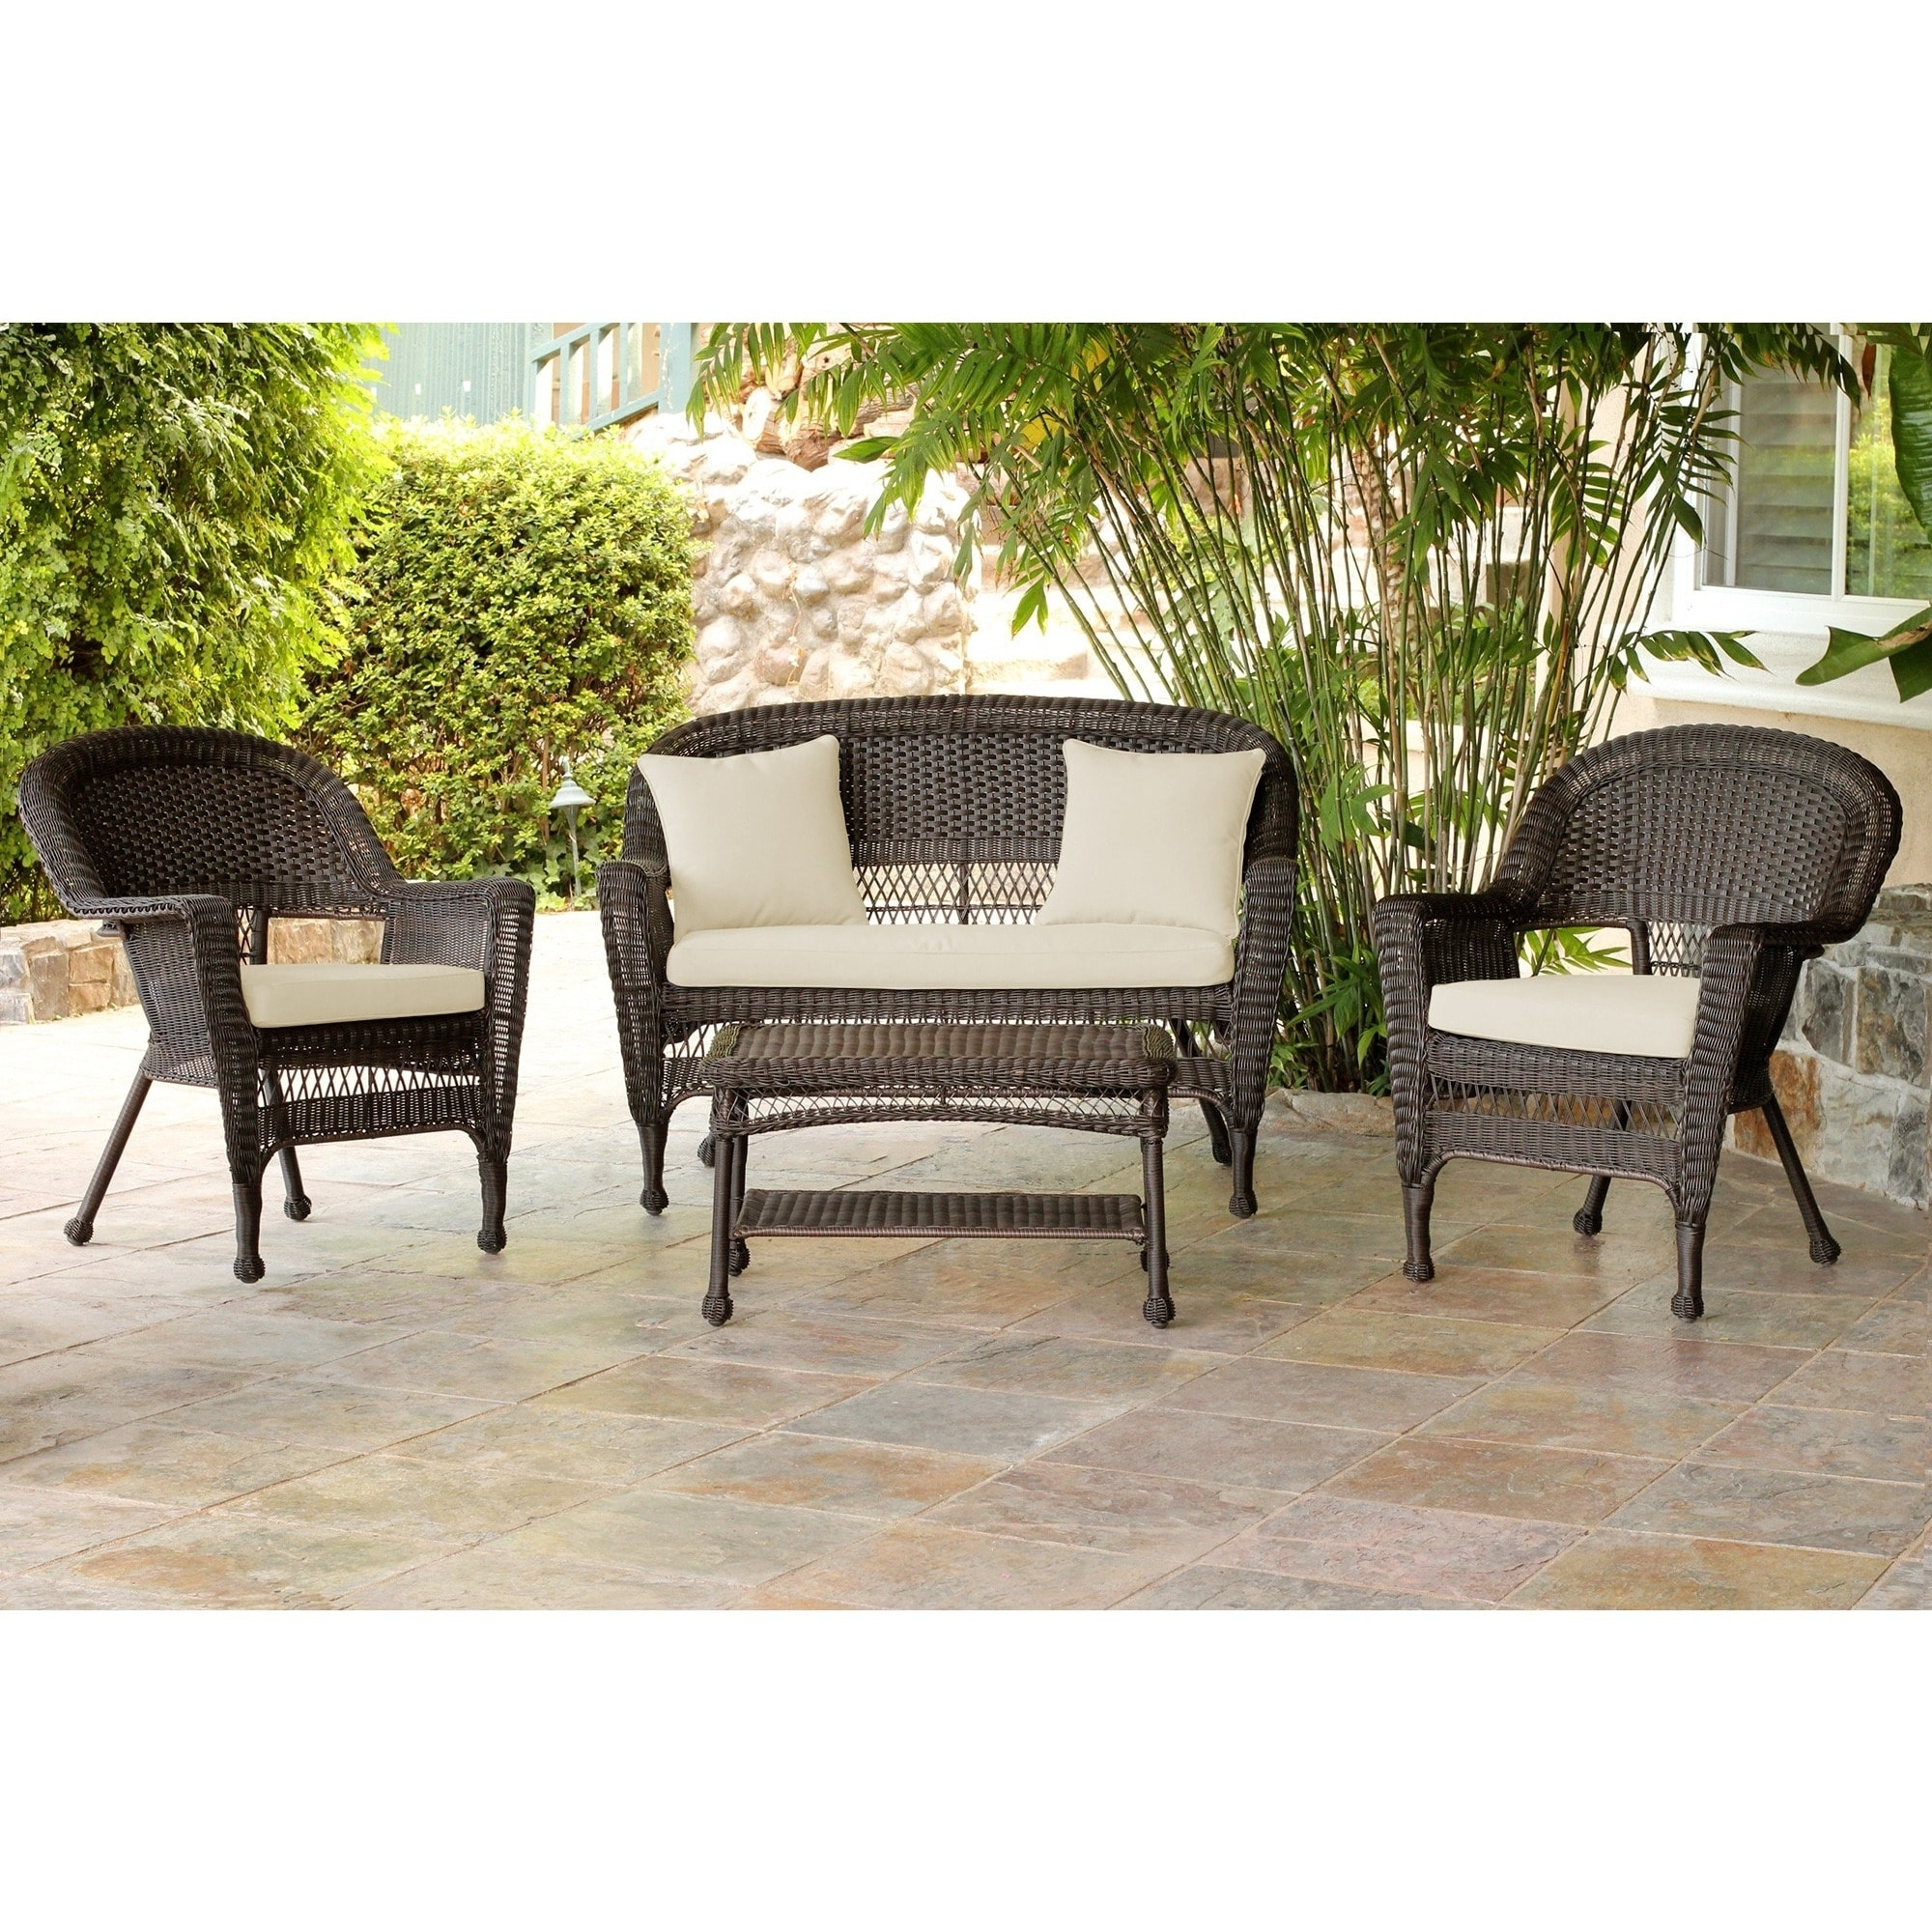 Shop Espresso Wicker 4 Piece Patio Conversation Set – Free Shipping Throughout Most Recently Released Black Patio Conversation Sets (View 19 of 20)